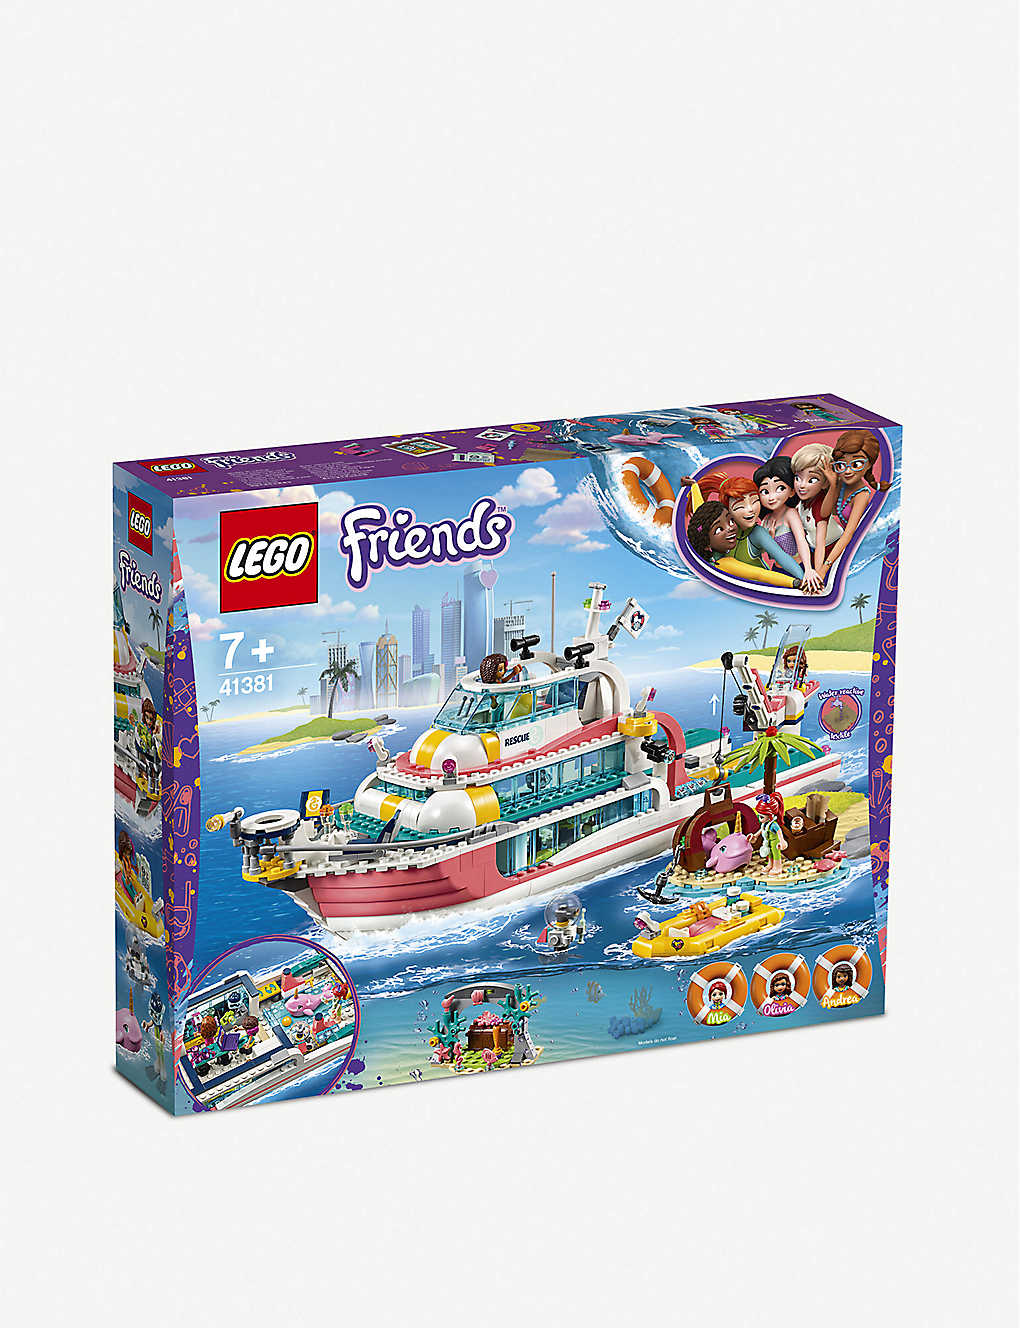 LEGO: Friends Rescue Mission Boat